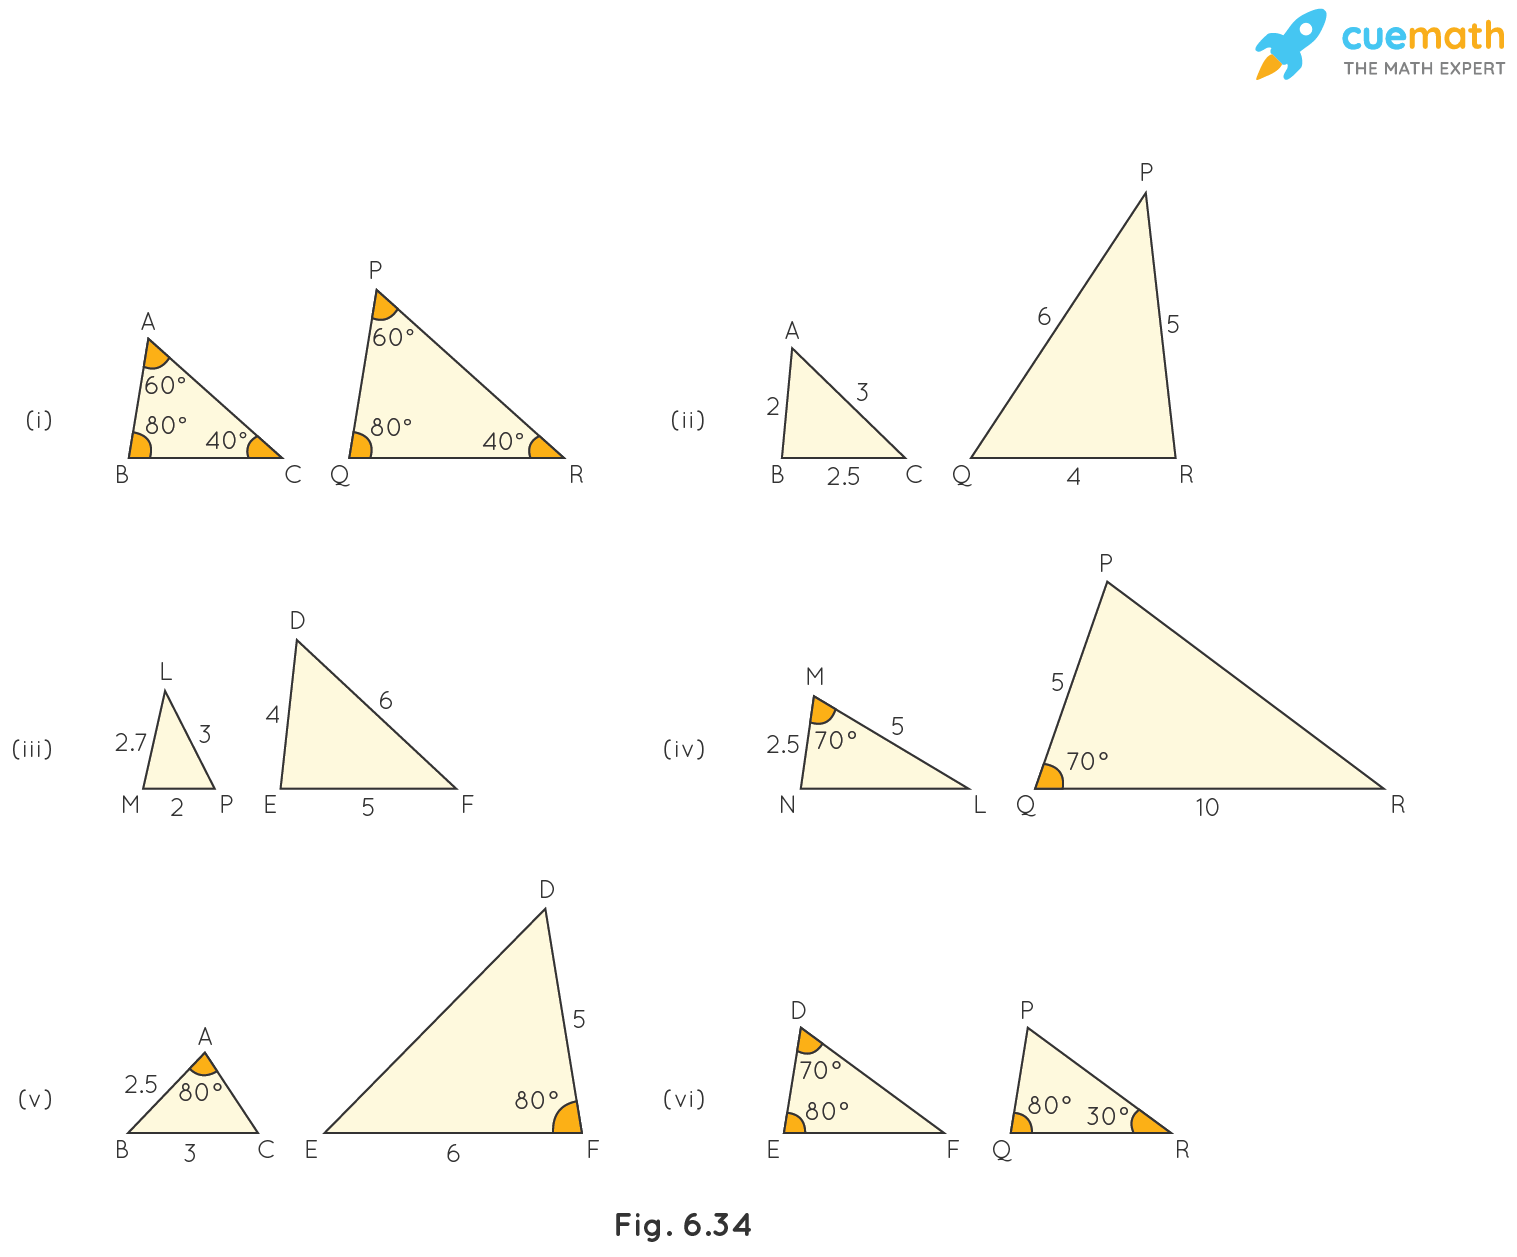 State which pairs of triangles in Fig. 6.34 are similar. Write the similarity criterion used by you for answering the question and also write the pairs of similar triangles in the symbolic form: